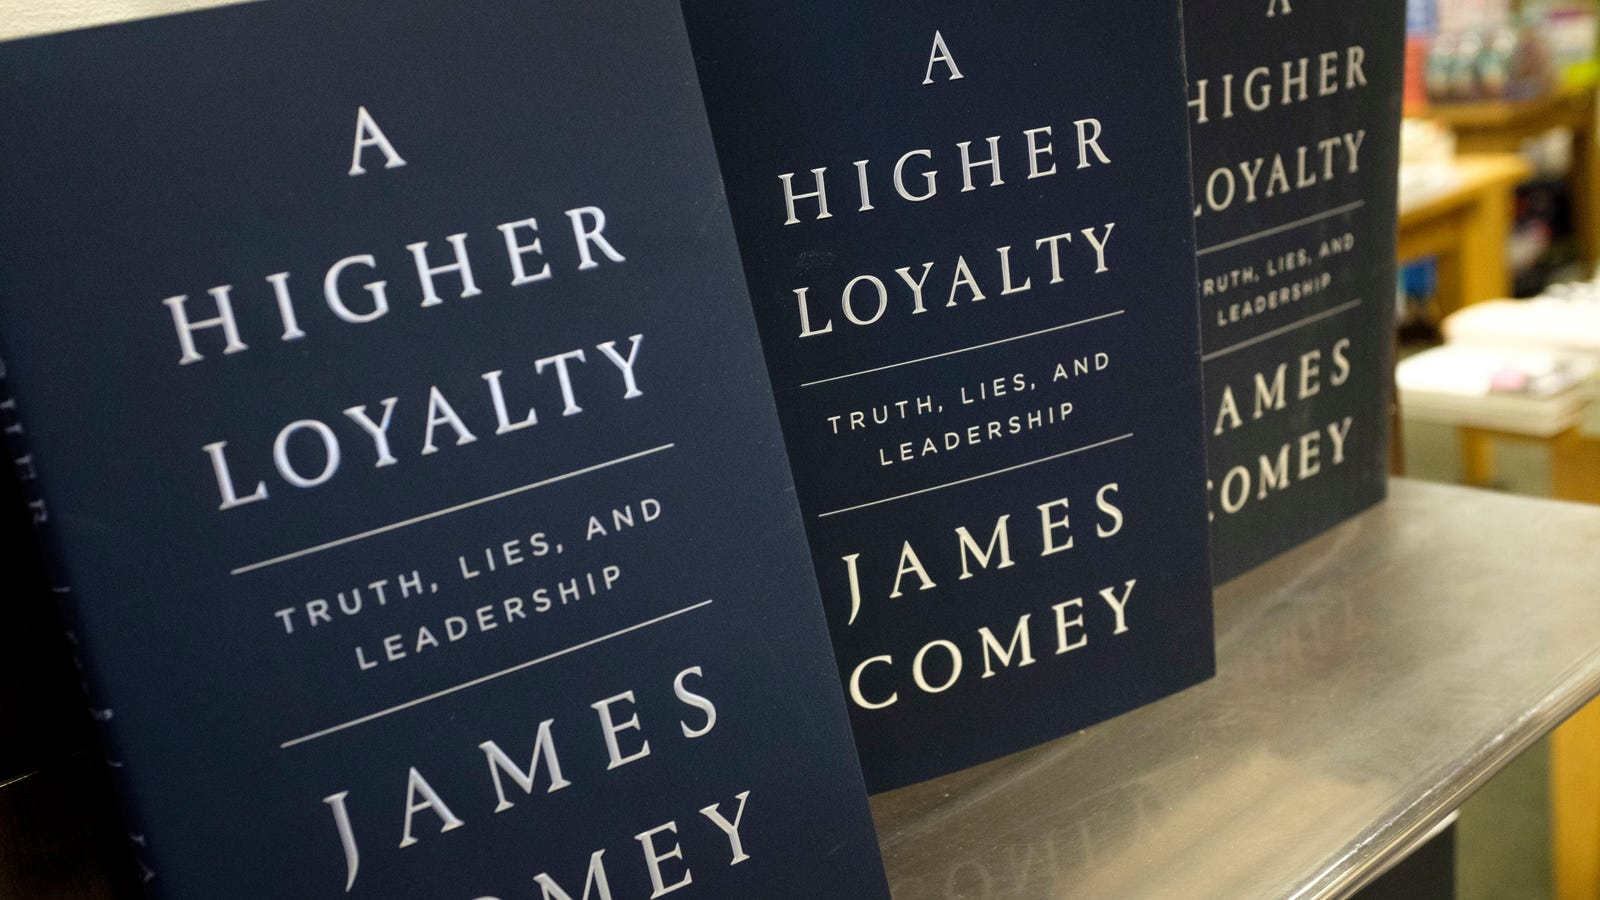 Only 'Verified' Buyers Can Review James Comey's Book on Amazon, Much to the Dismay of Trump Supporters